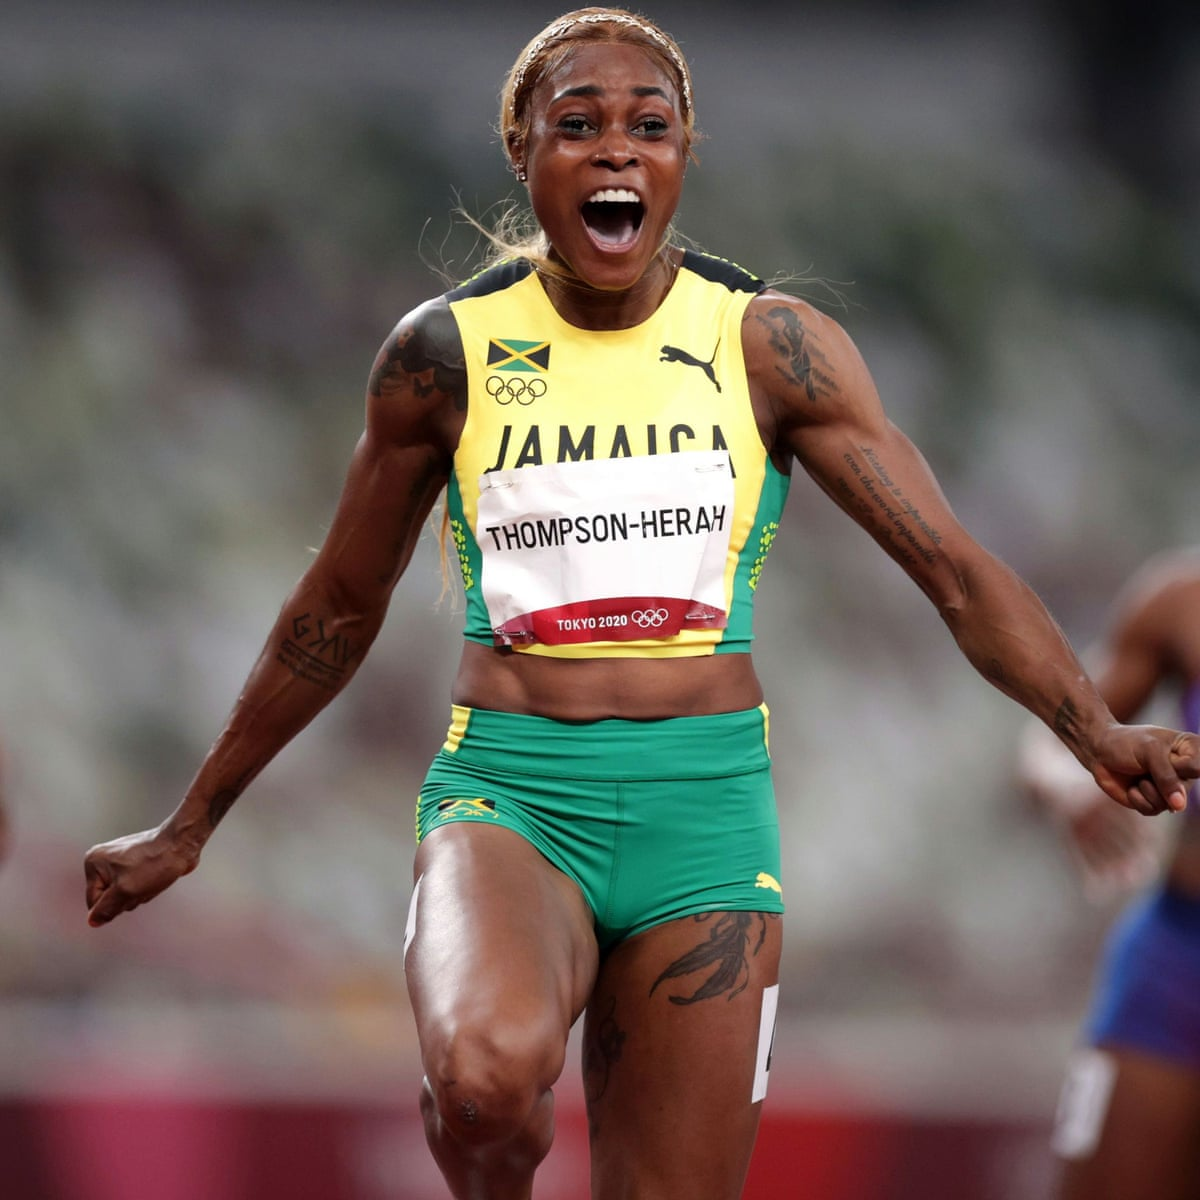 Elaine Thompson-Herah wins greatest 100m women's race ever to take gold |  Tokyo Olympic Games 2020 | The Guardian